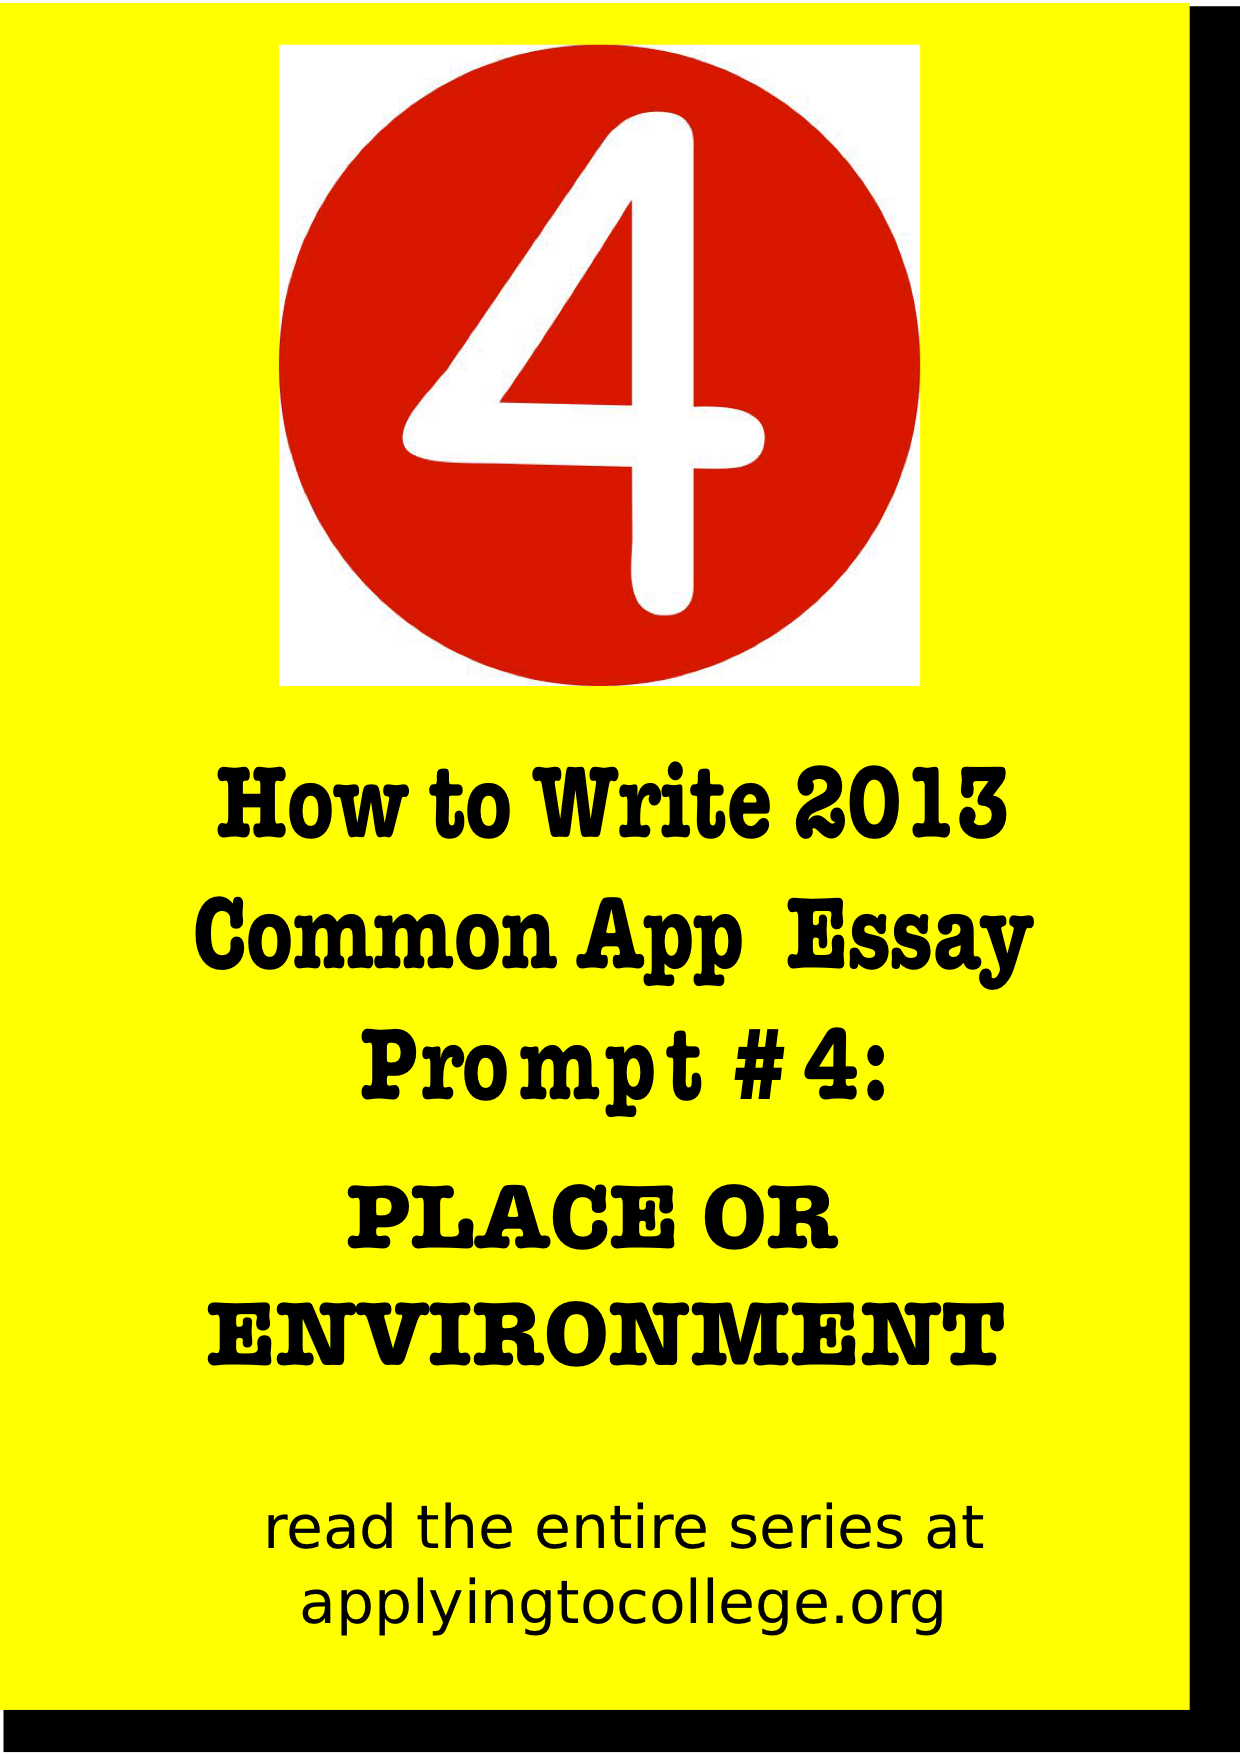 The common app essay - Essays at clinicadramariatabares.com